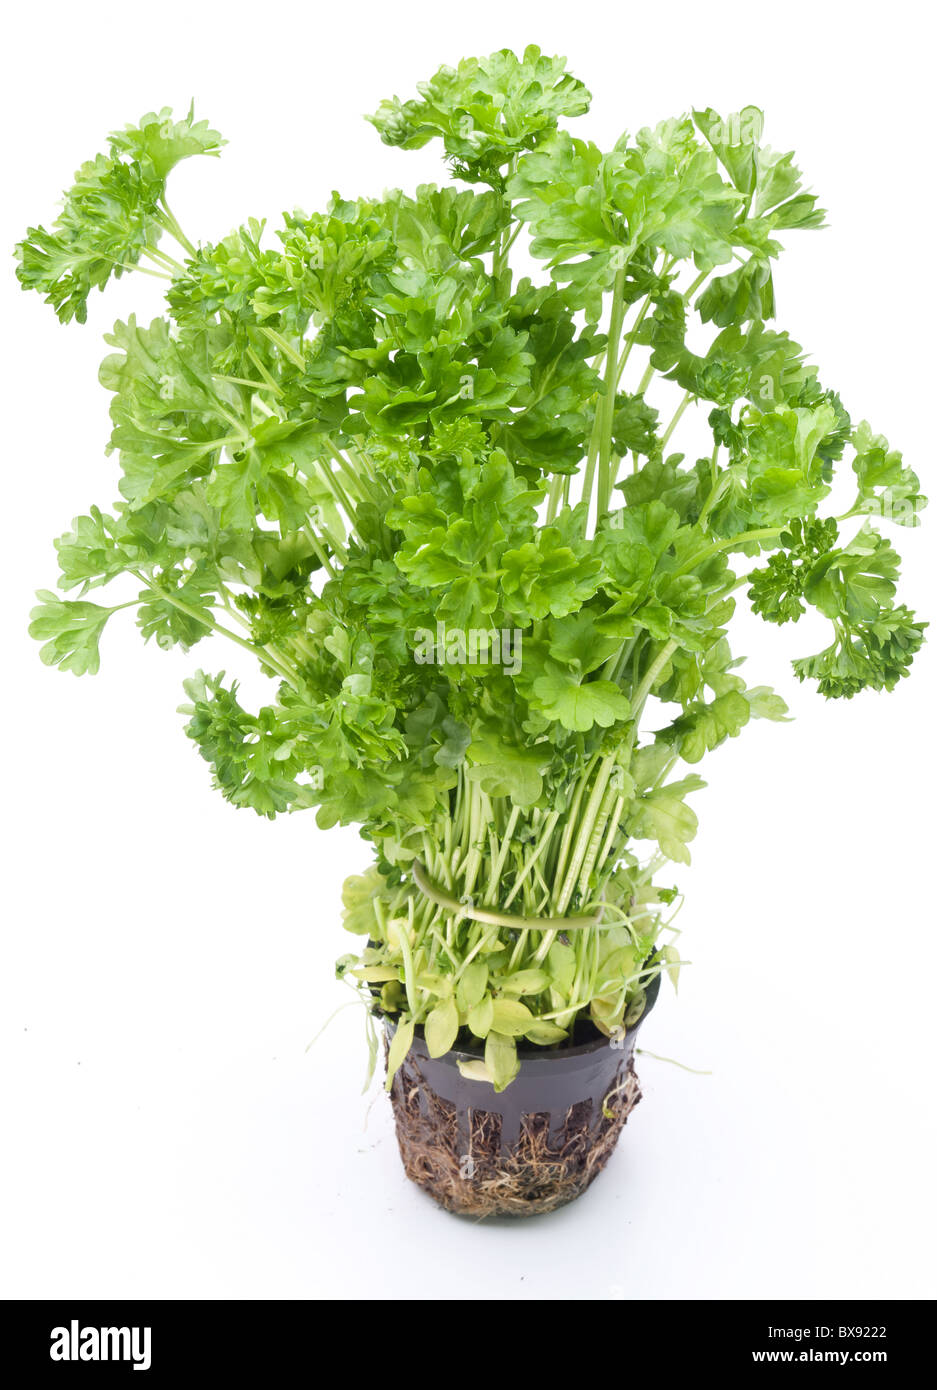 Bunch of parsley on a white background - Stock Image